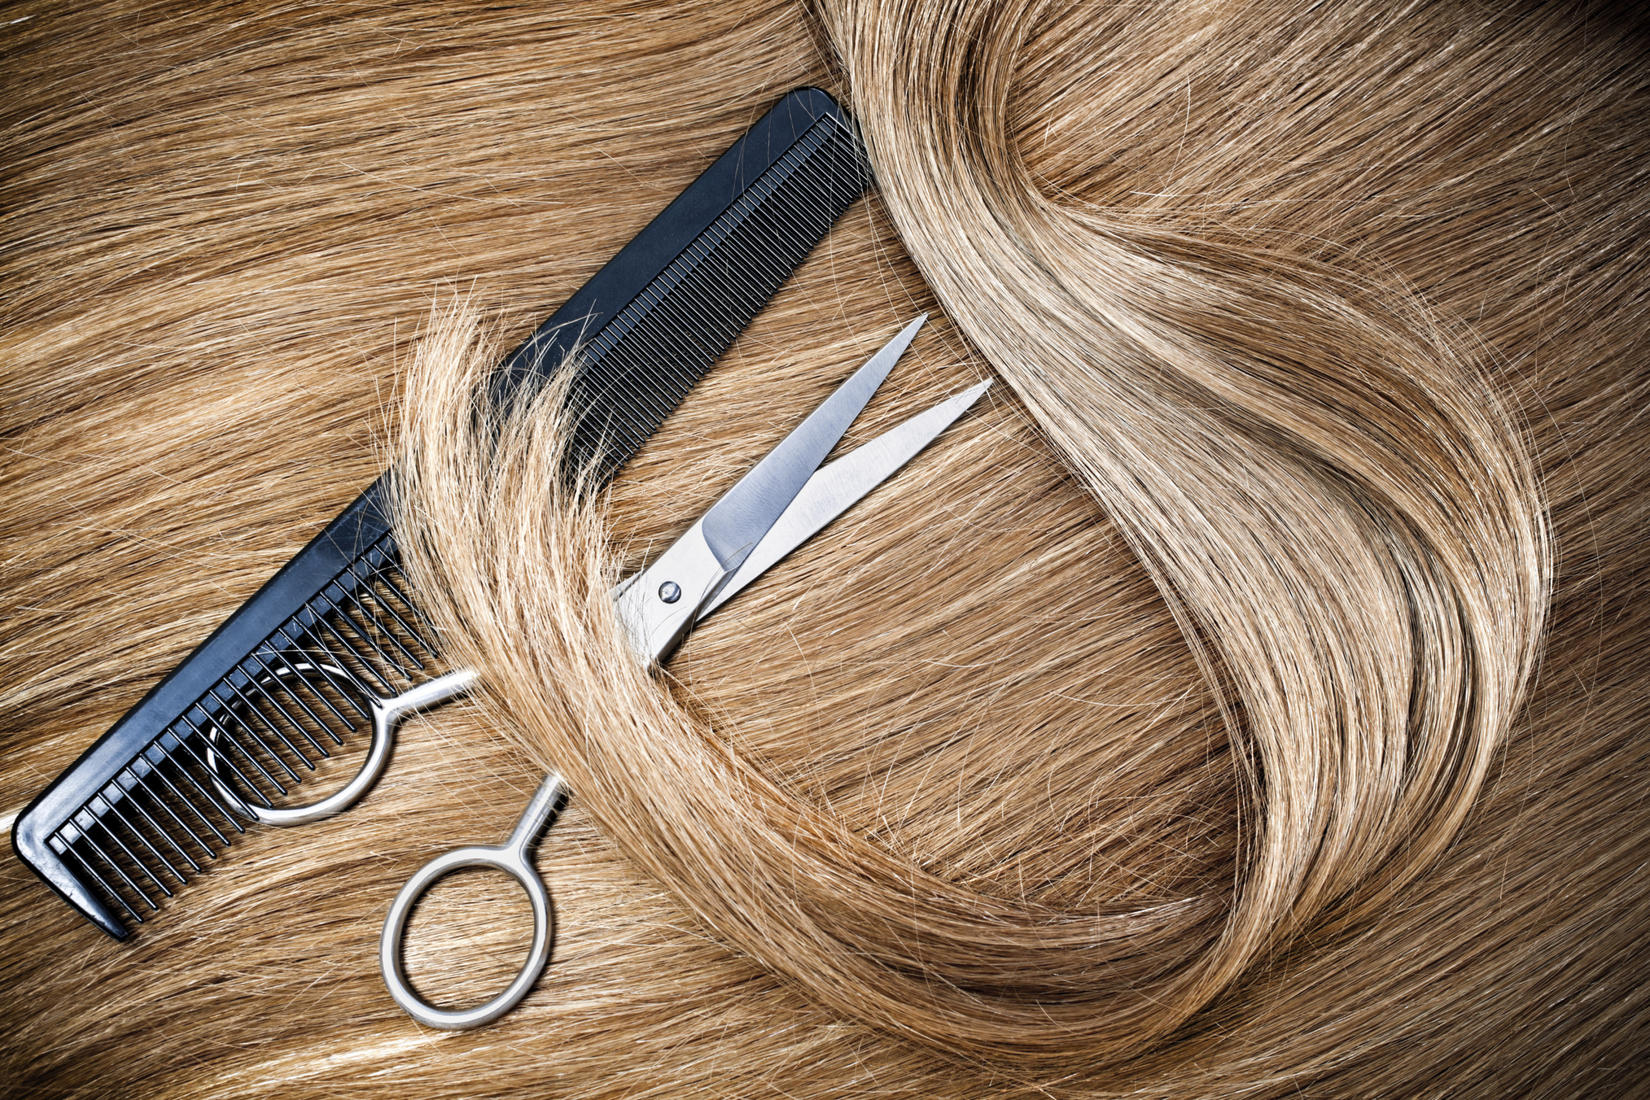 What Are The Benefits Of Professional Hairdressing Scissors?